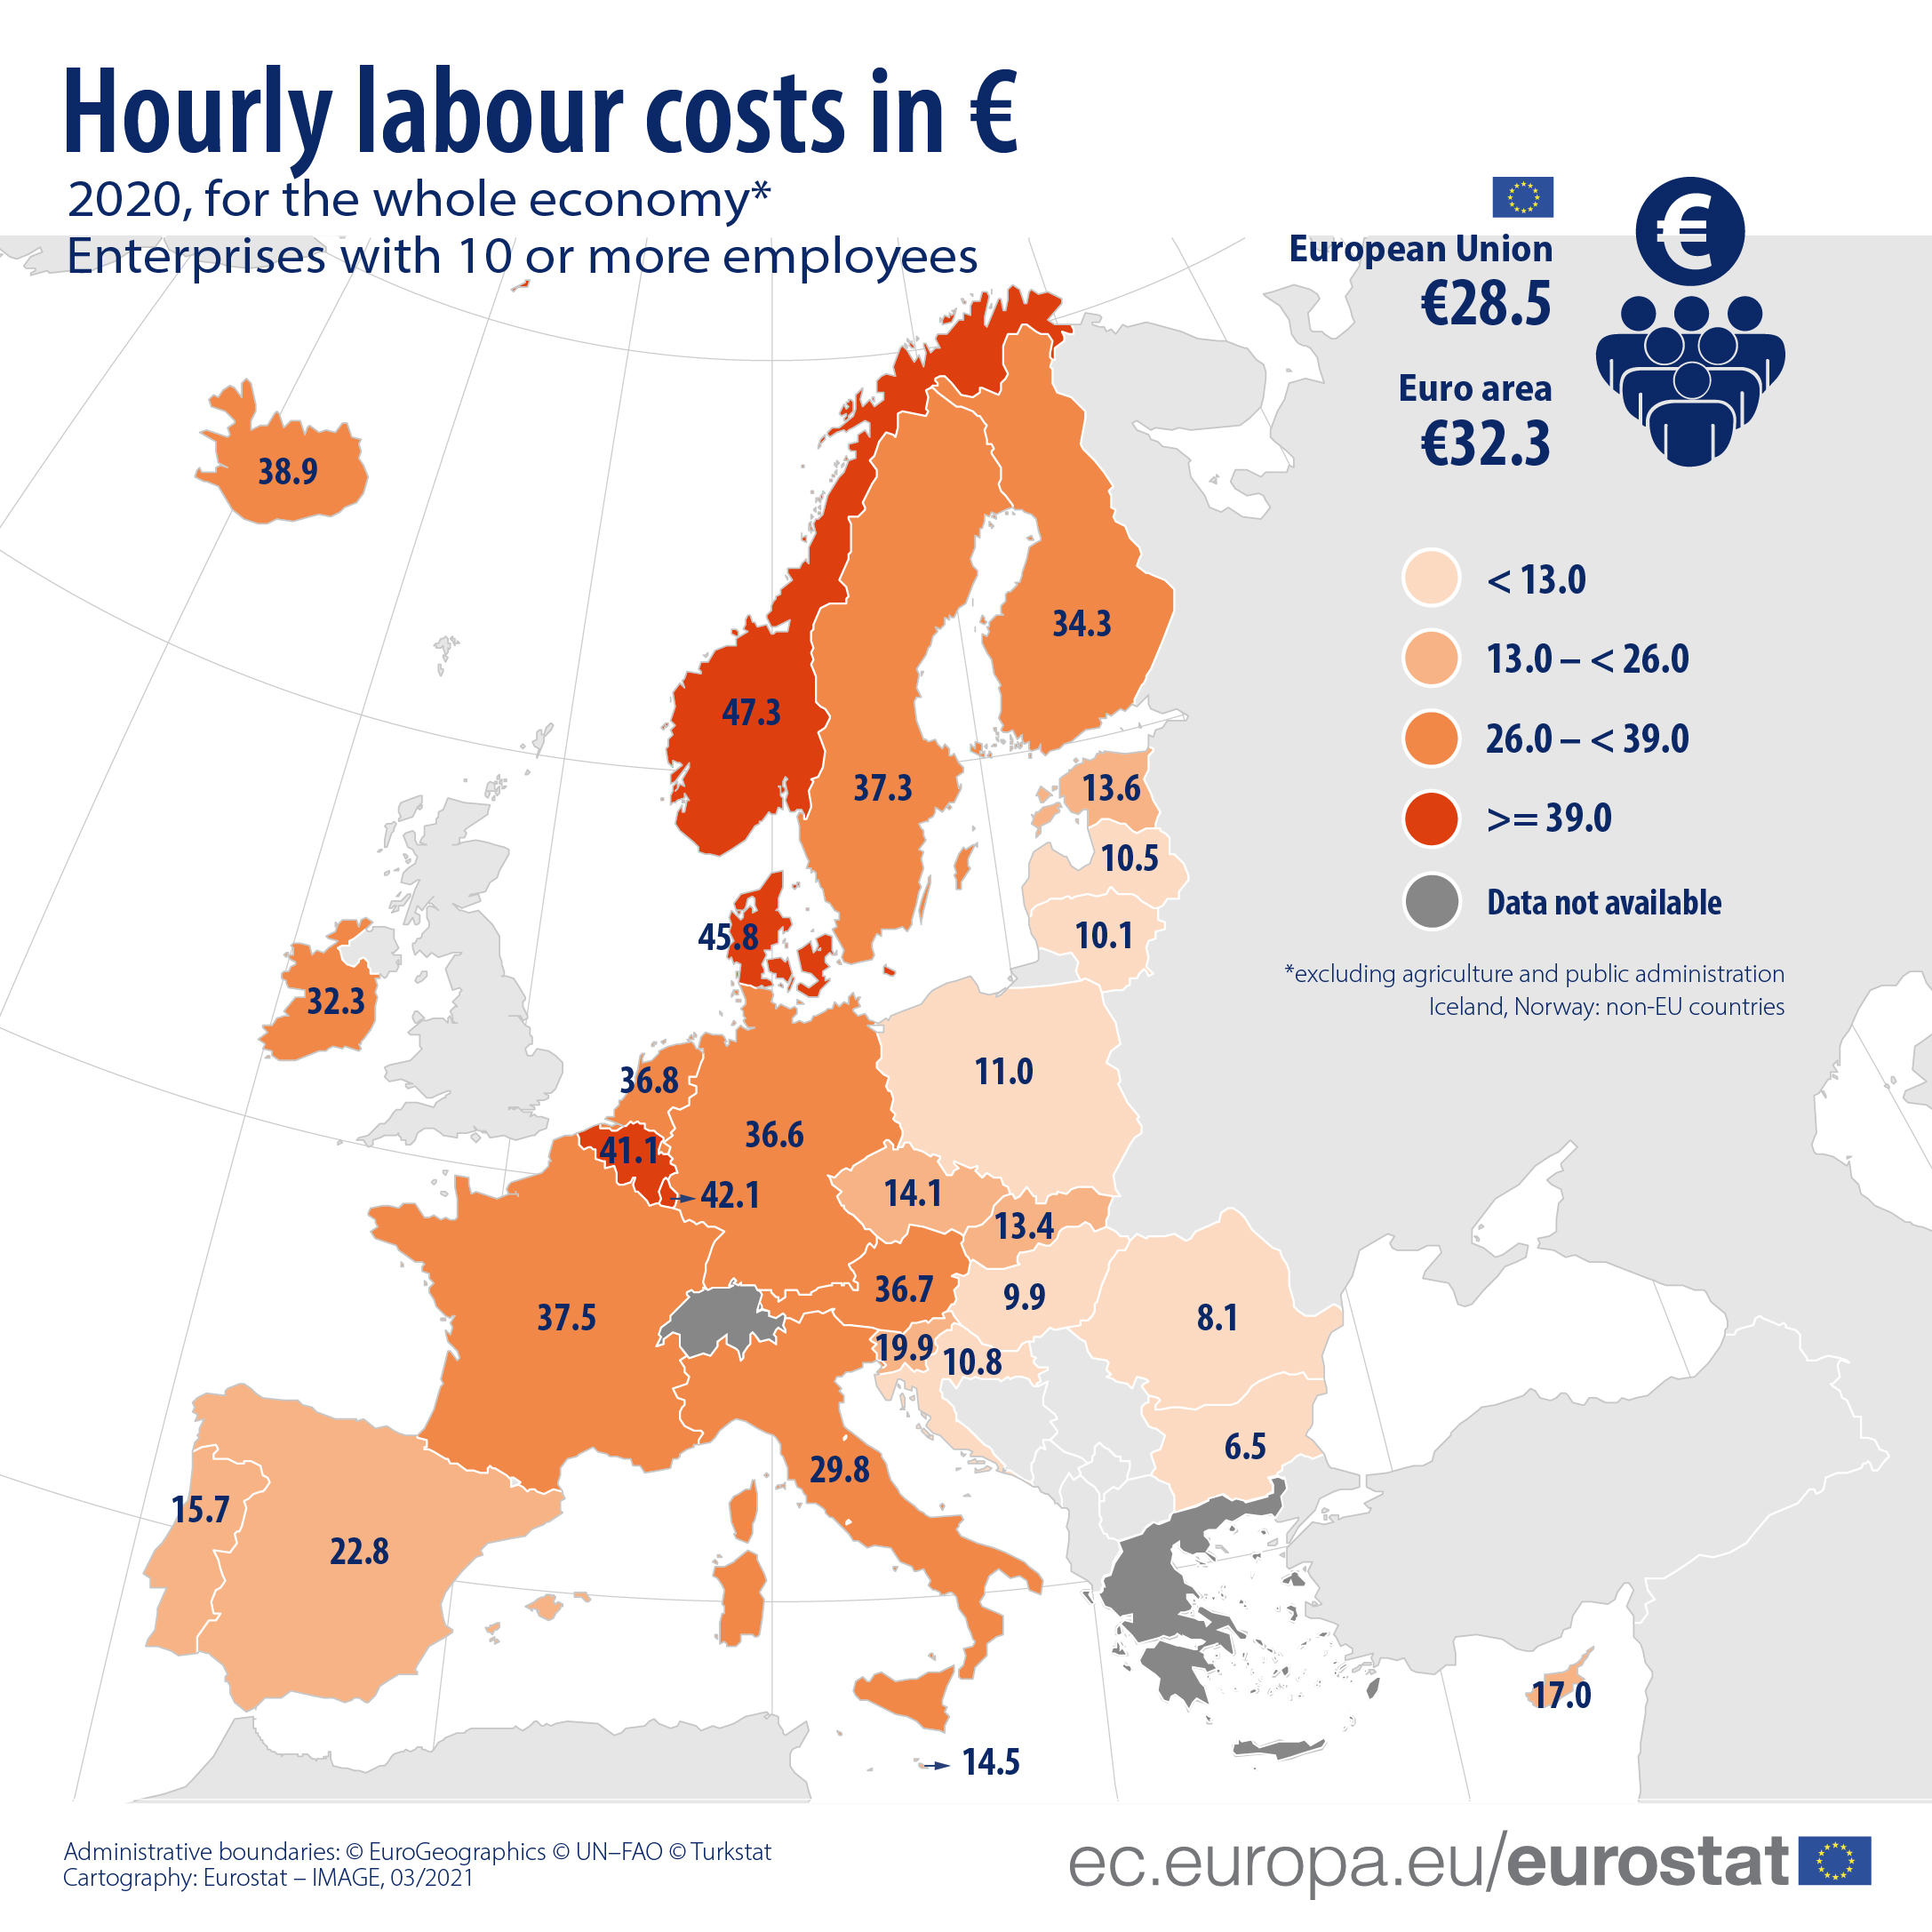 Labour cost levels in 2020